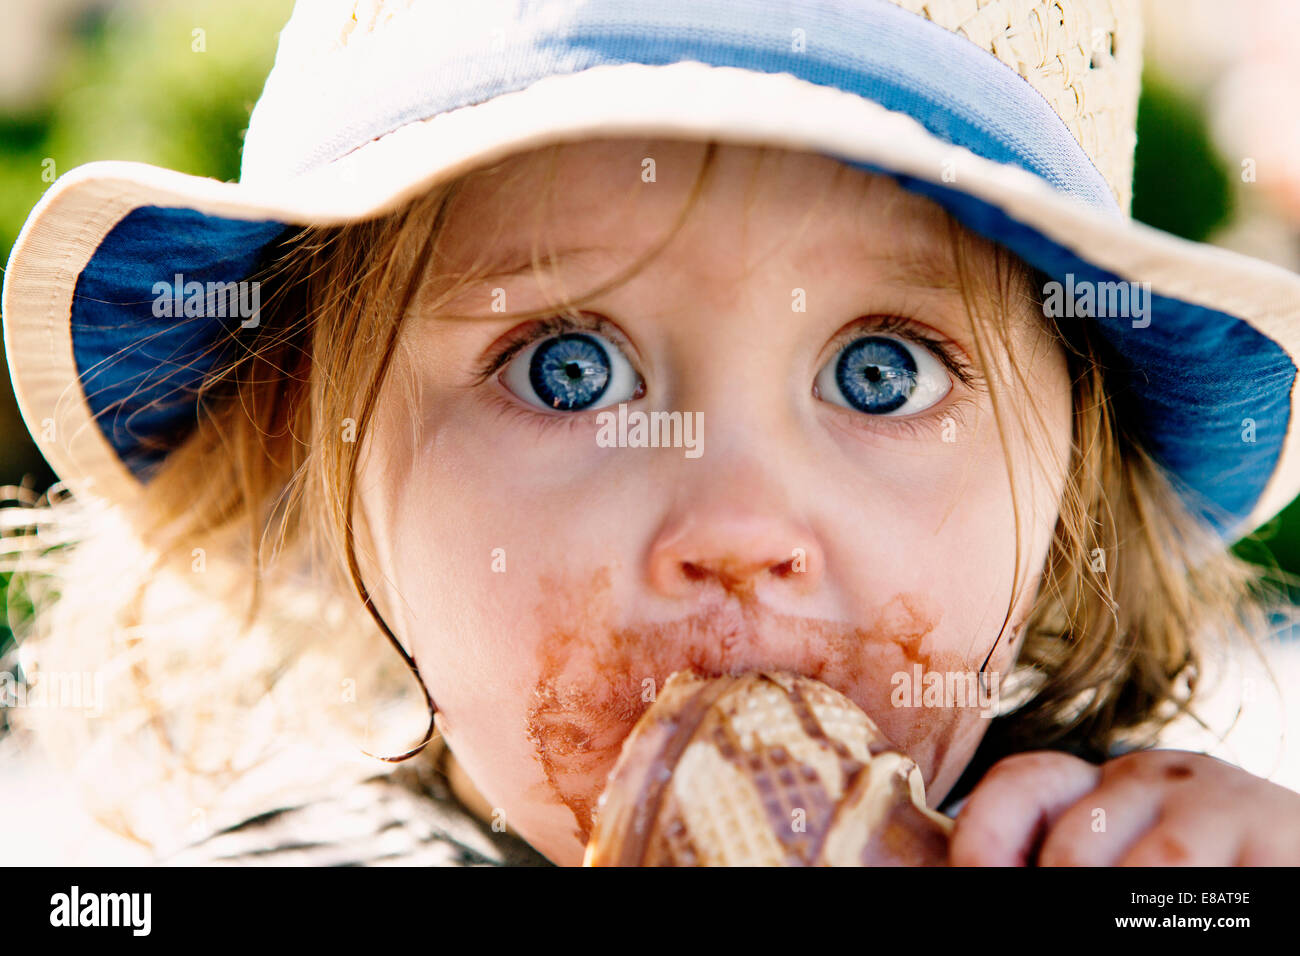 Young Girl eating ice cream cone Photo Stock